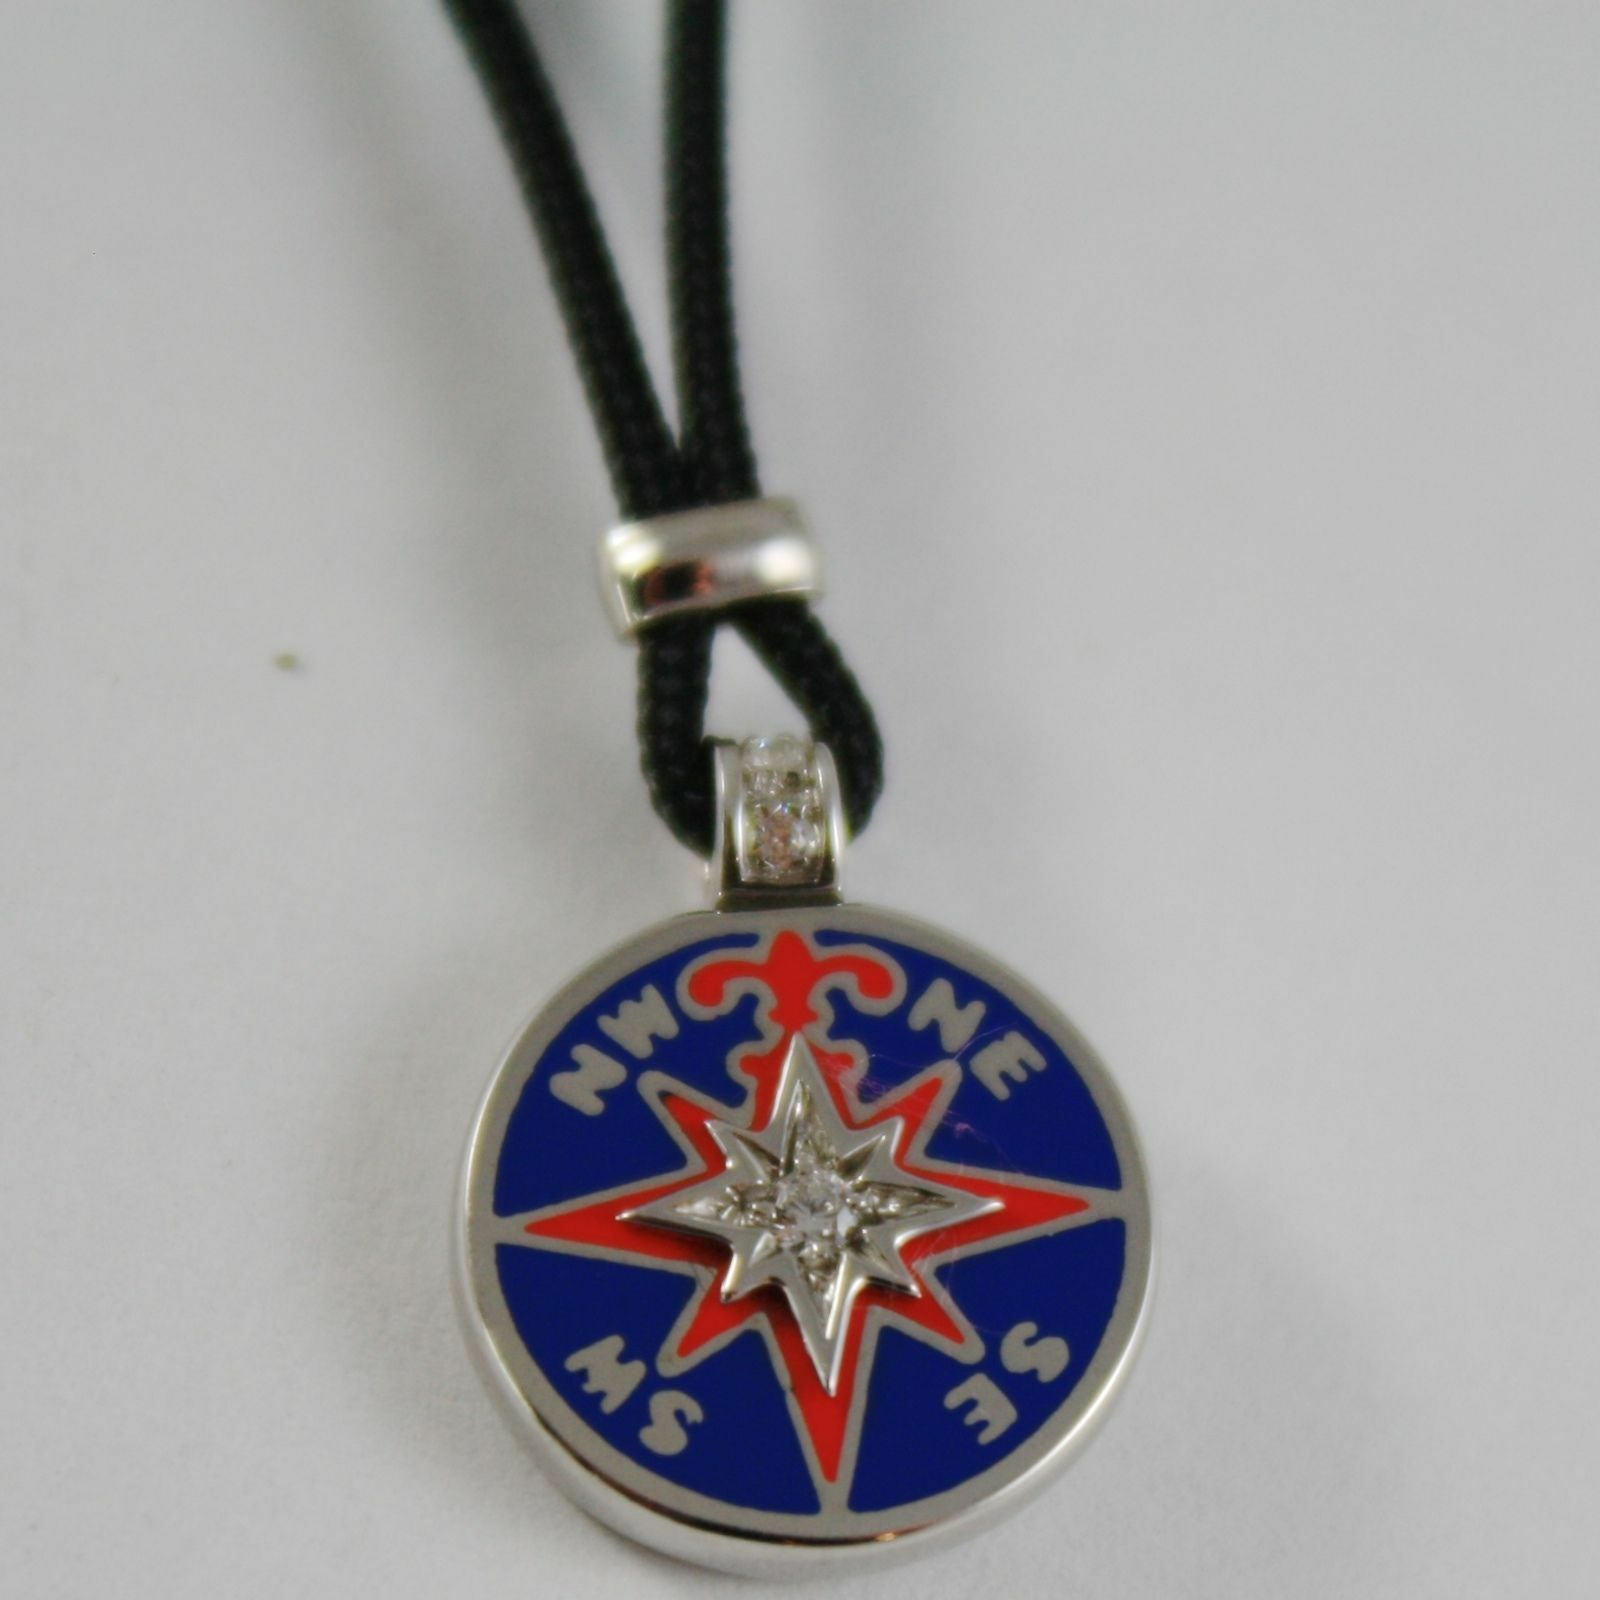 925 SILVER GLAZED WIND'S COMPASS PENDANT, NECKLACE BY ZANCAN MADE IN ITALY